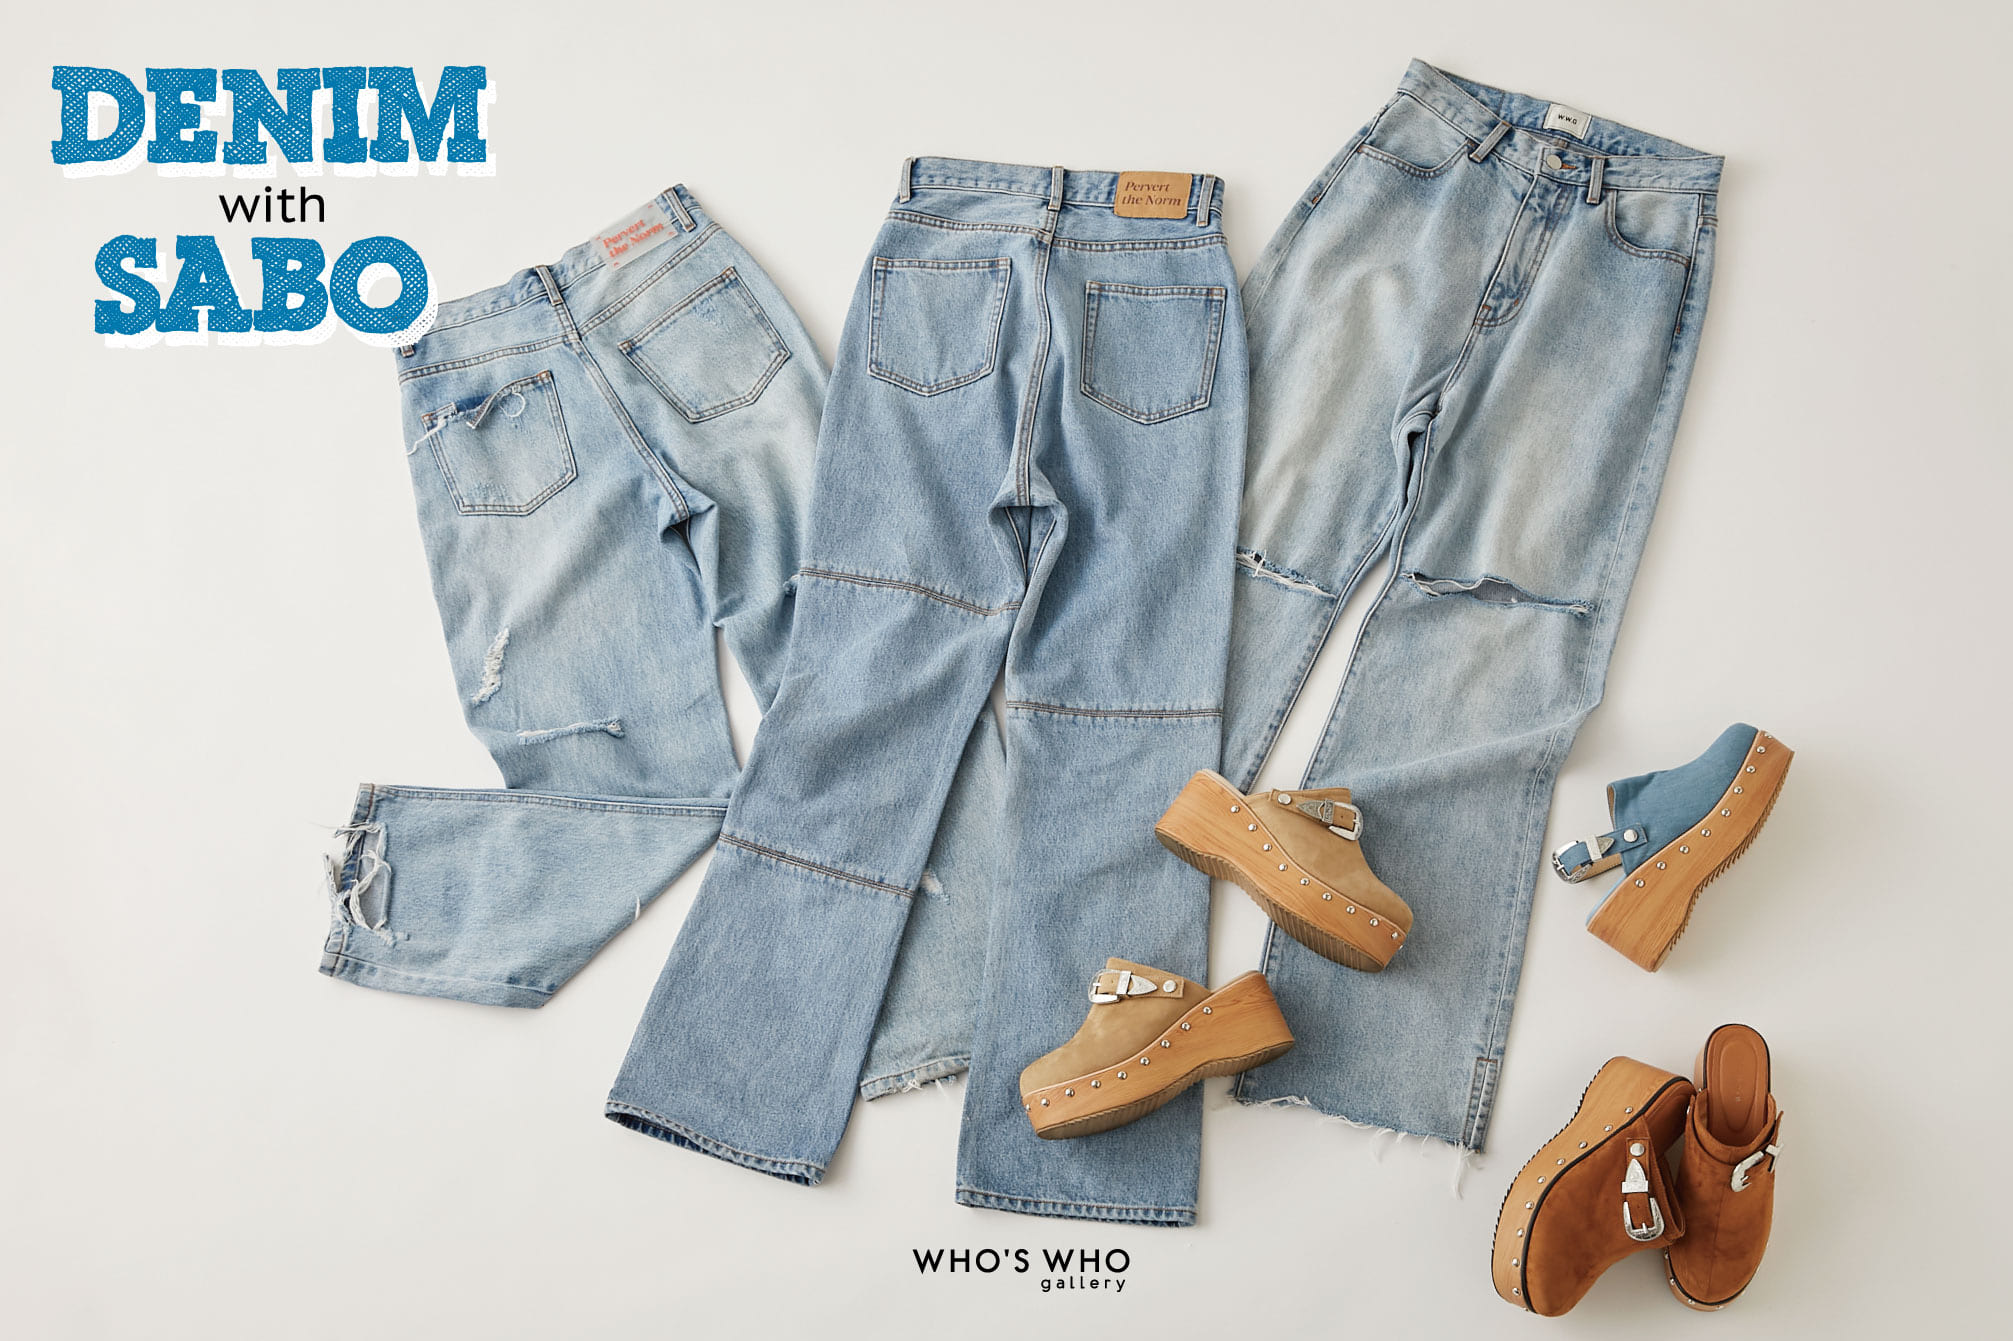 WHO'S WHO gallery 【DENIM with SABO】